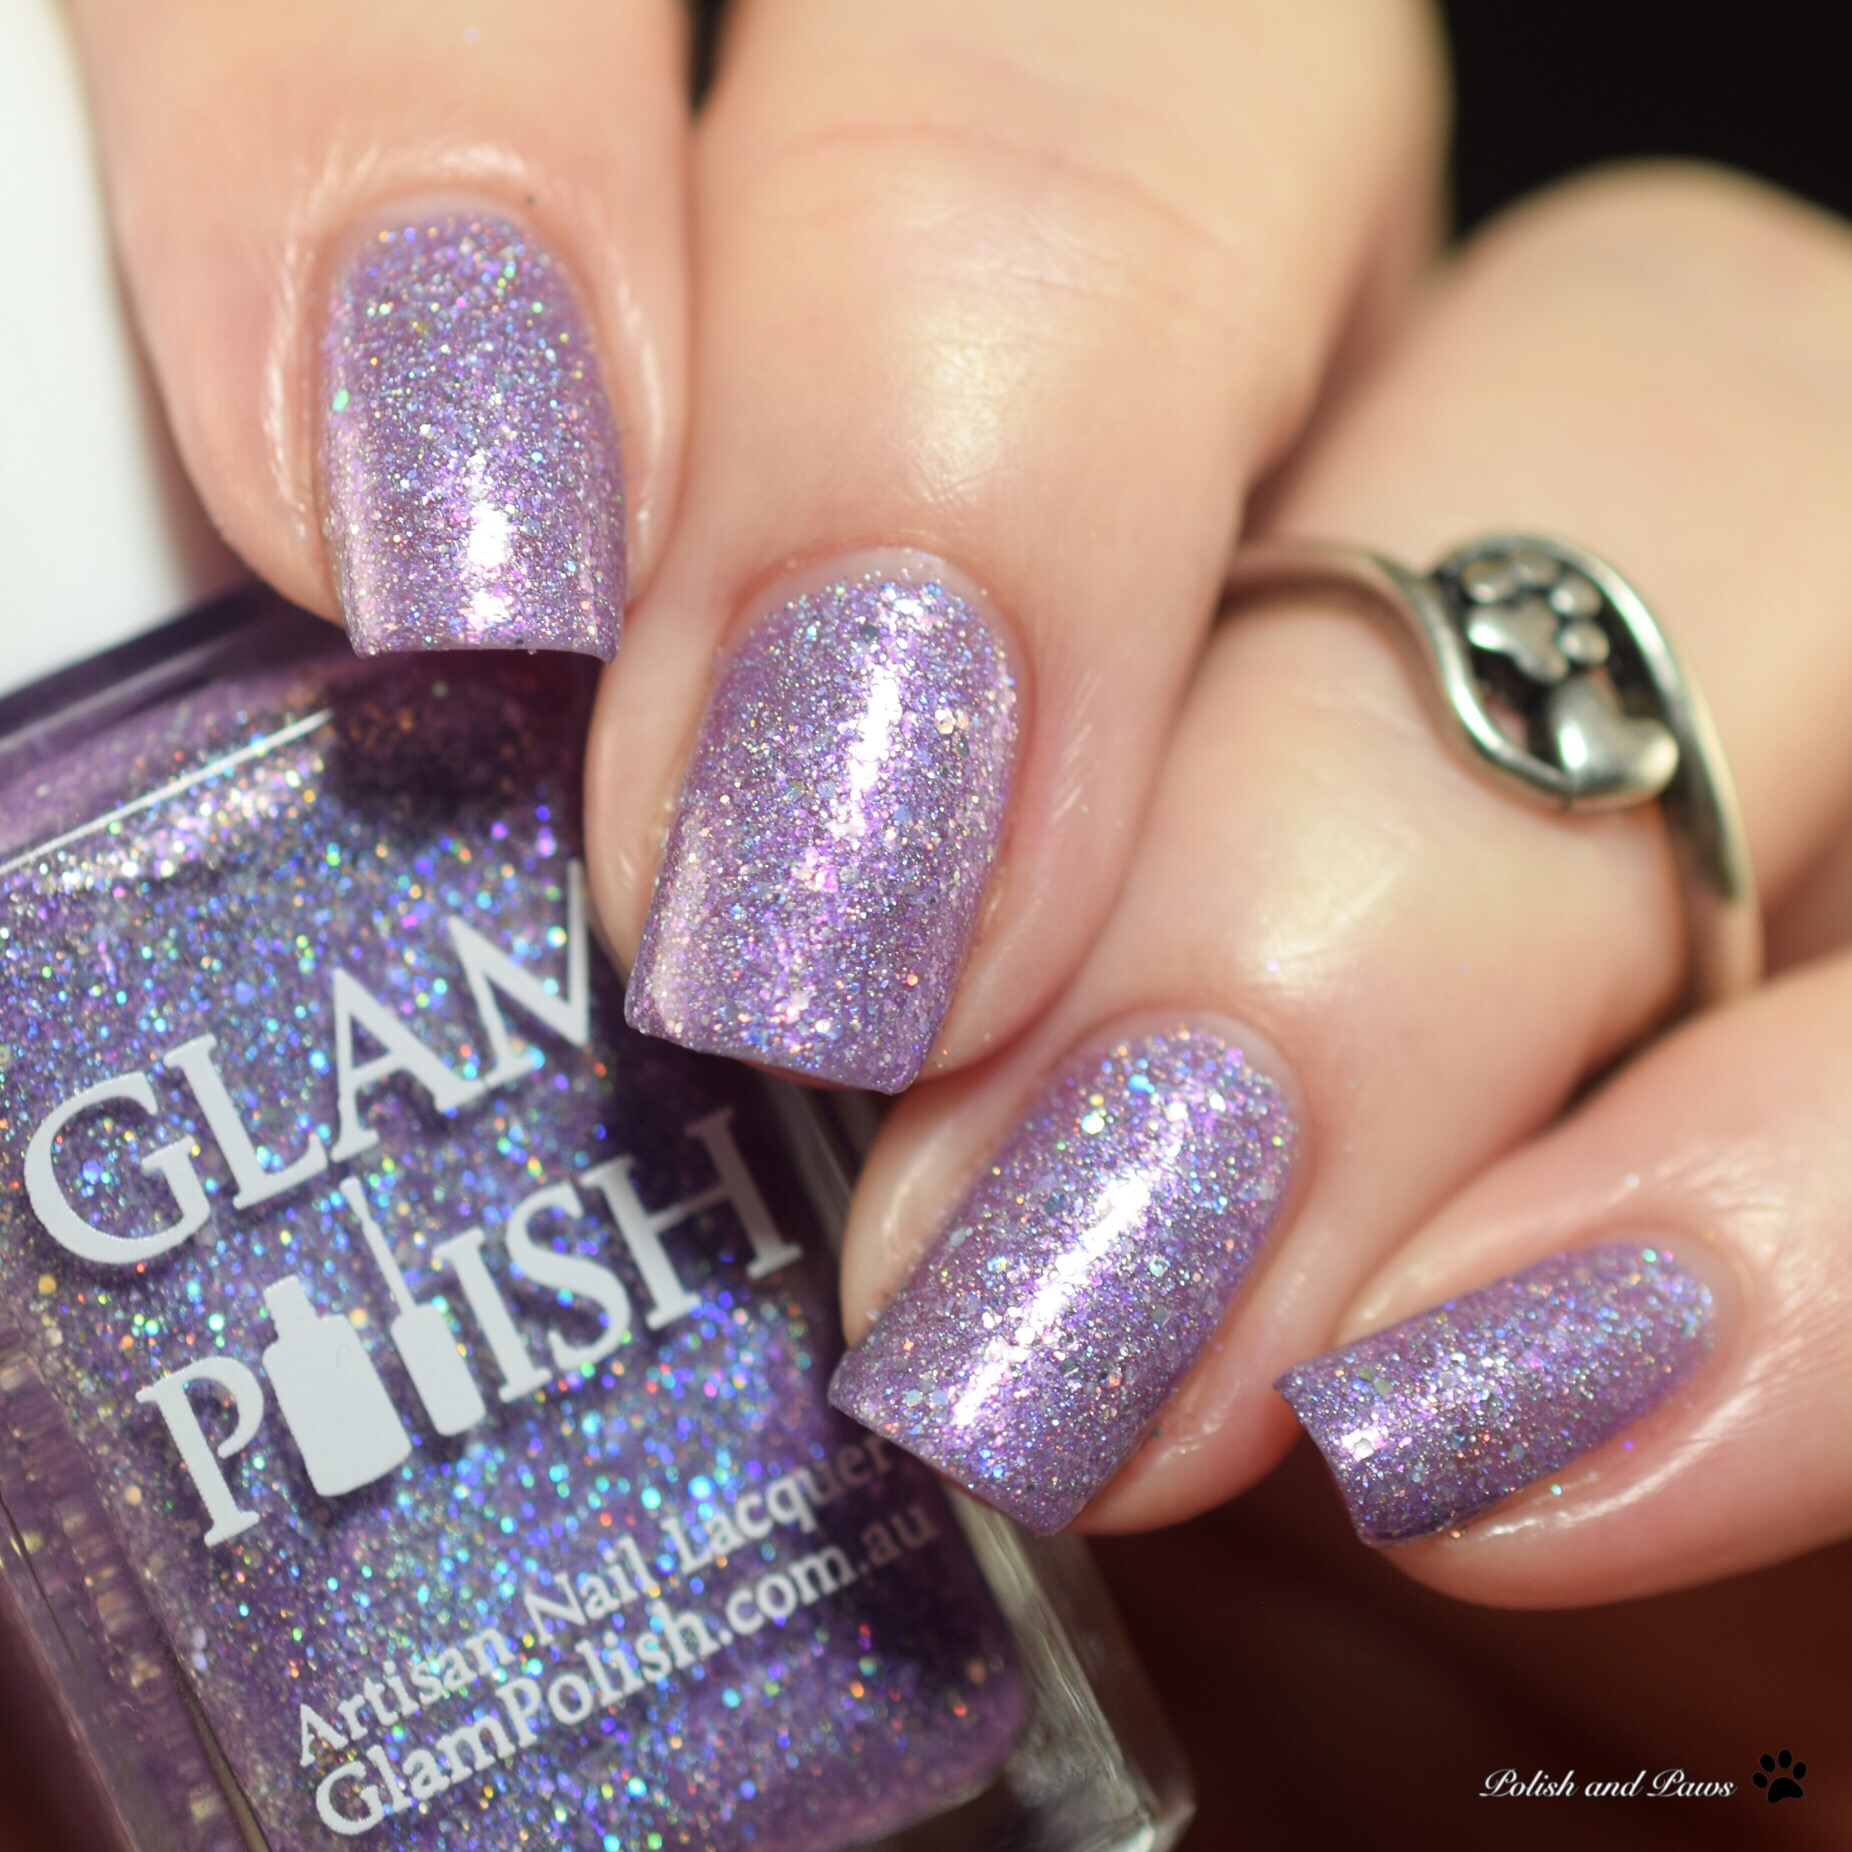 Glam Polish To Shell and Back